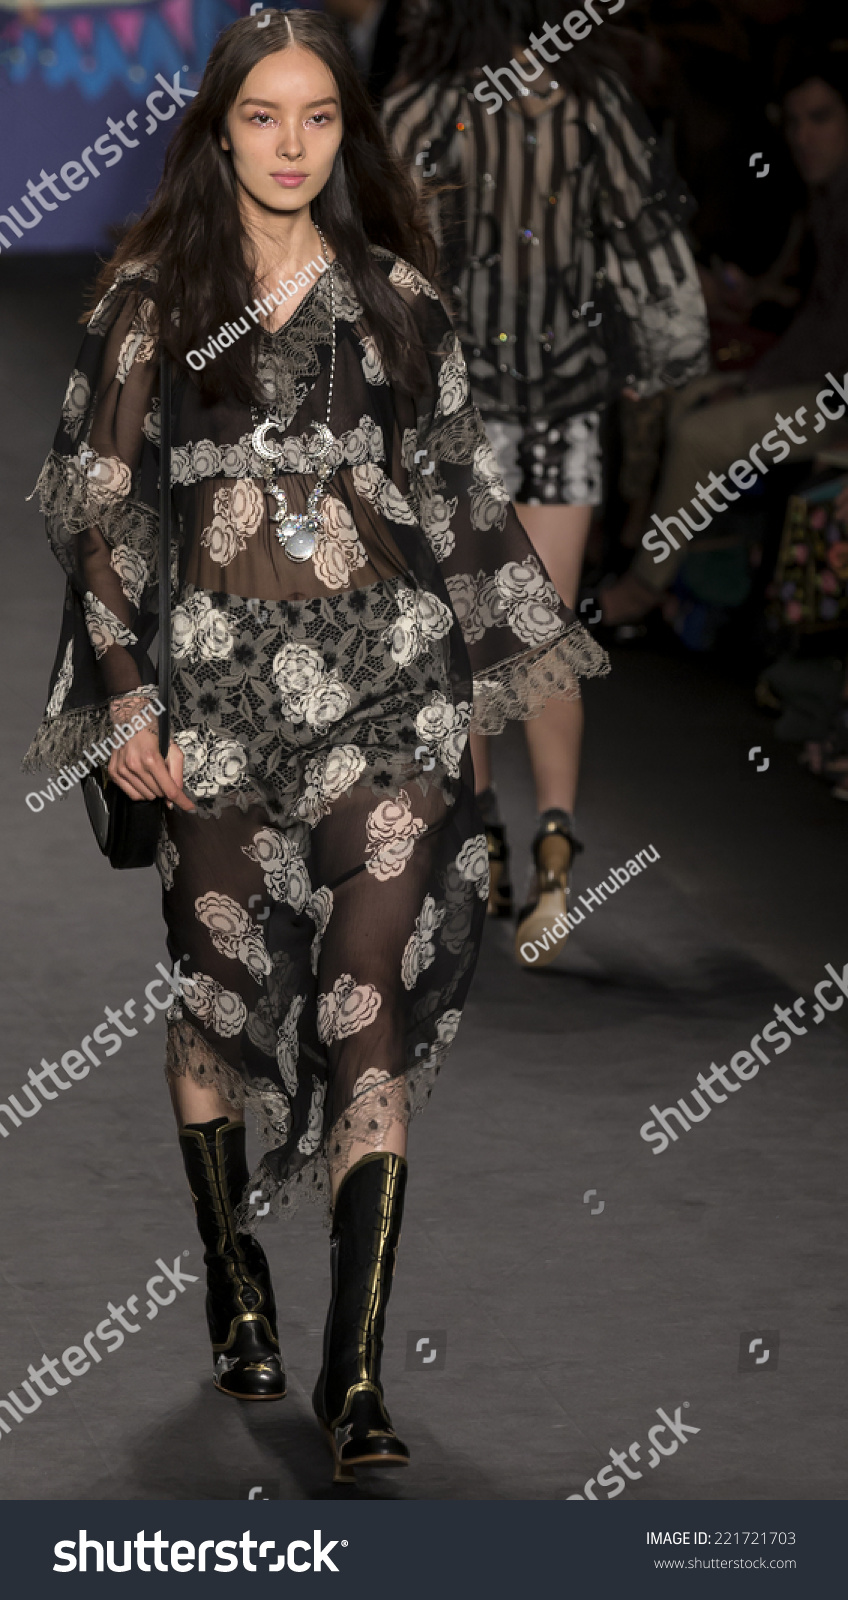 NEW YORK NY SEPTEMBER 10 Fei Fei Sun walks the runway at Anna Sui fashion show during Mercedes-Benz Fashion Week Spring 2015 at The Theatre at Lincoln Center SEPTEMBER 10 2014